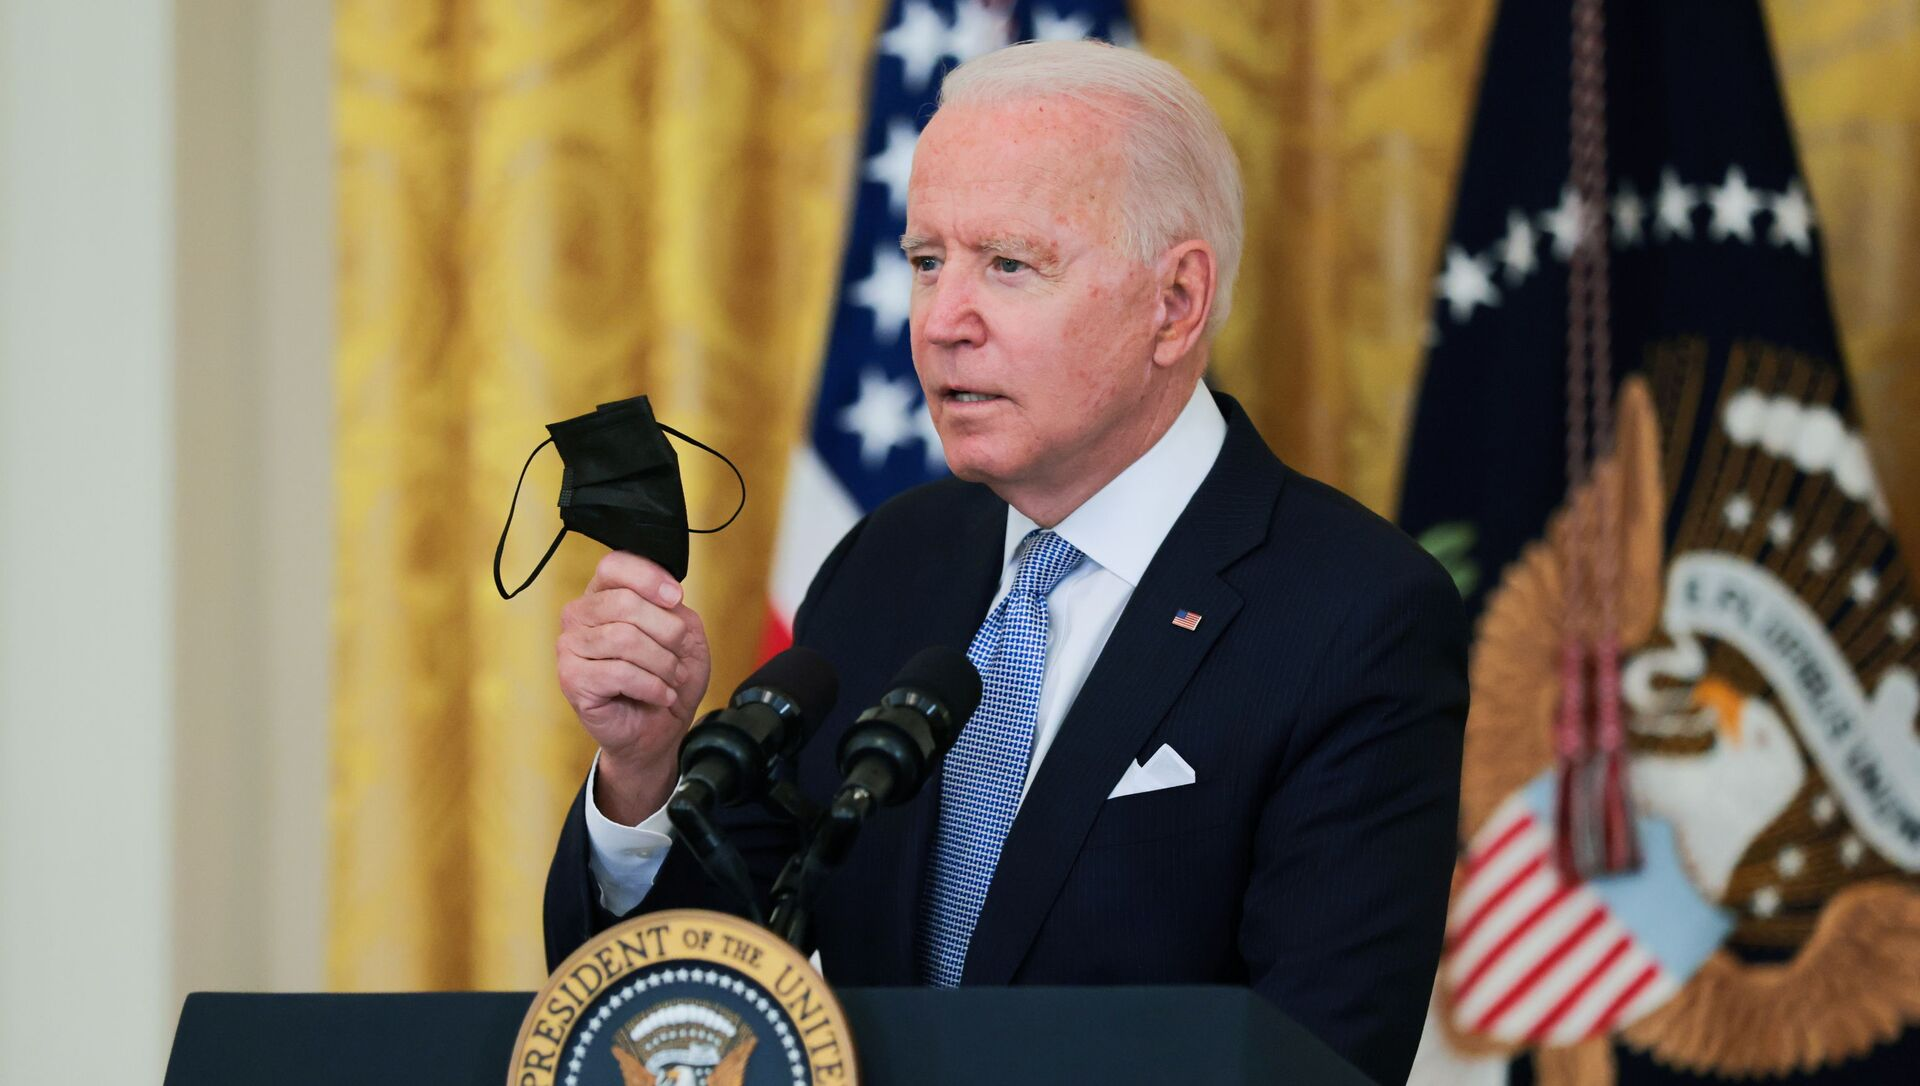 U.S. President Joe Biden holds his mask as he speaks about the pace of coronavirus disease (COVID-19) vaccinations in the United States during remarks in the East Room of the White House in Washington, U.S., July 29, 2021 - Sputnik International, 1920, 30.07.2021